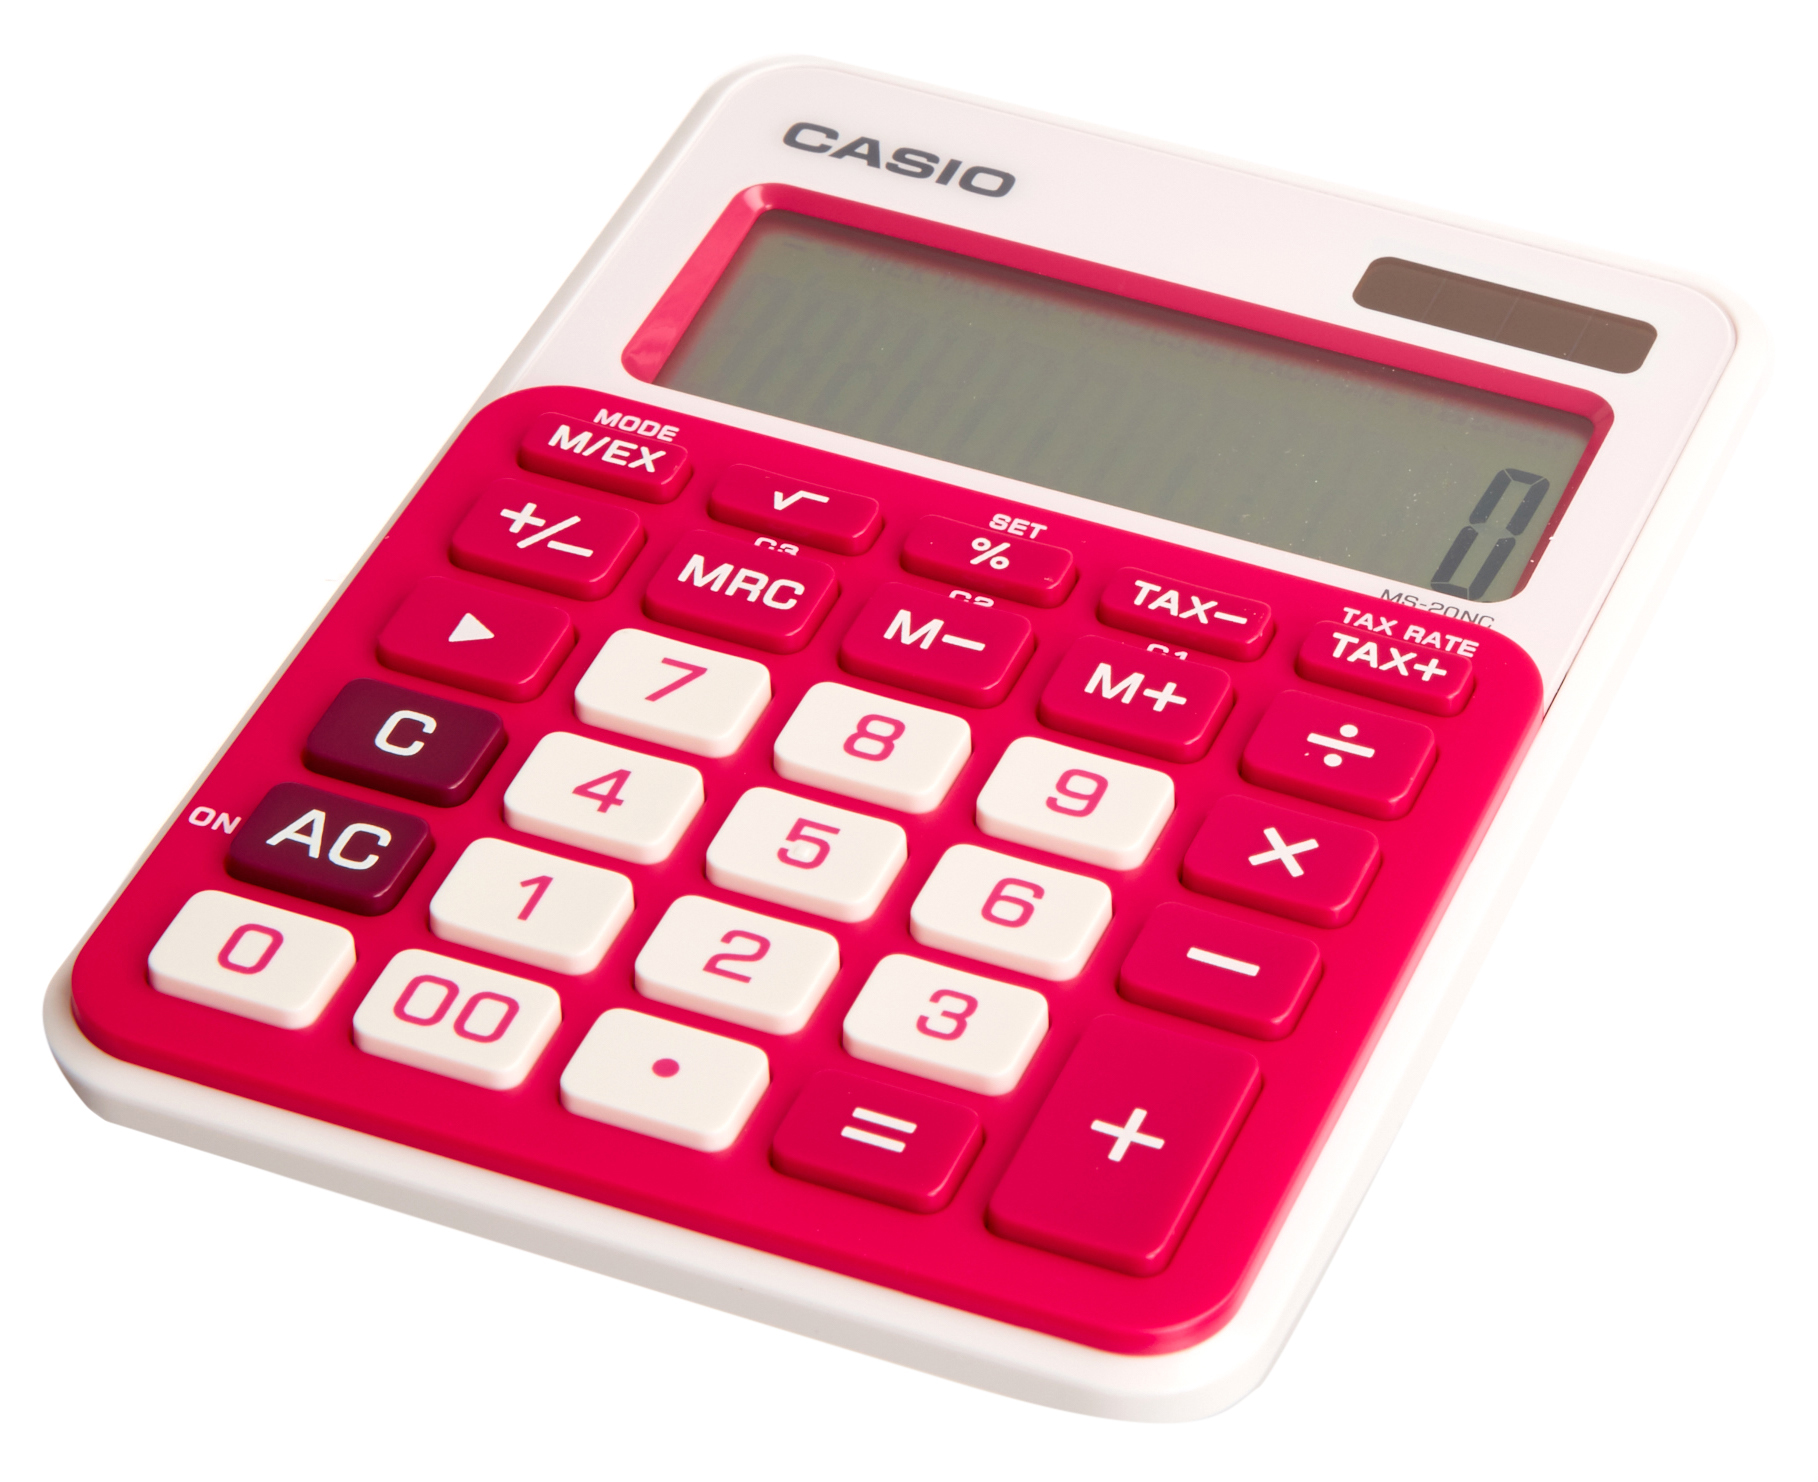 Casio MS-20 12 Digit Desk Calculator Red - Calculators - Home ...